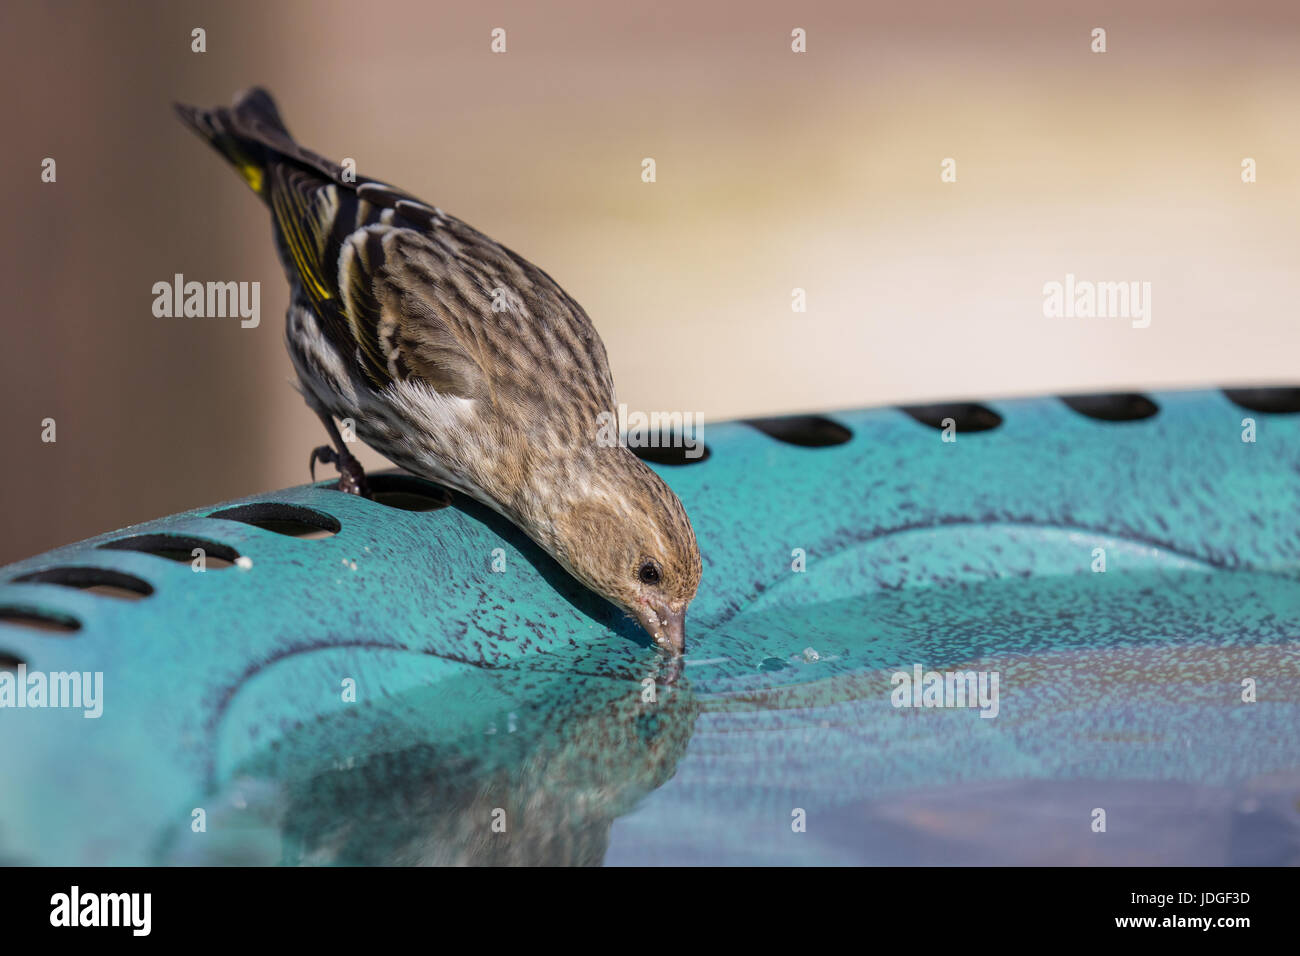 Pine Siskin, a small type of finch, visits a backyard bird bath and drinks from it. - Stock Image